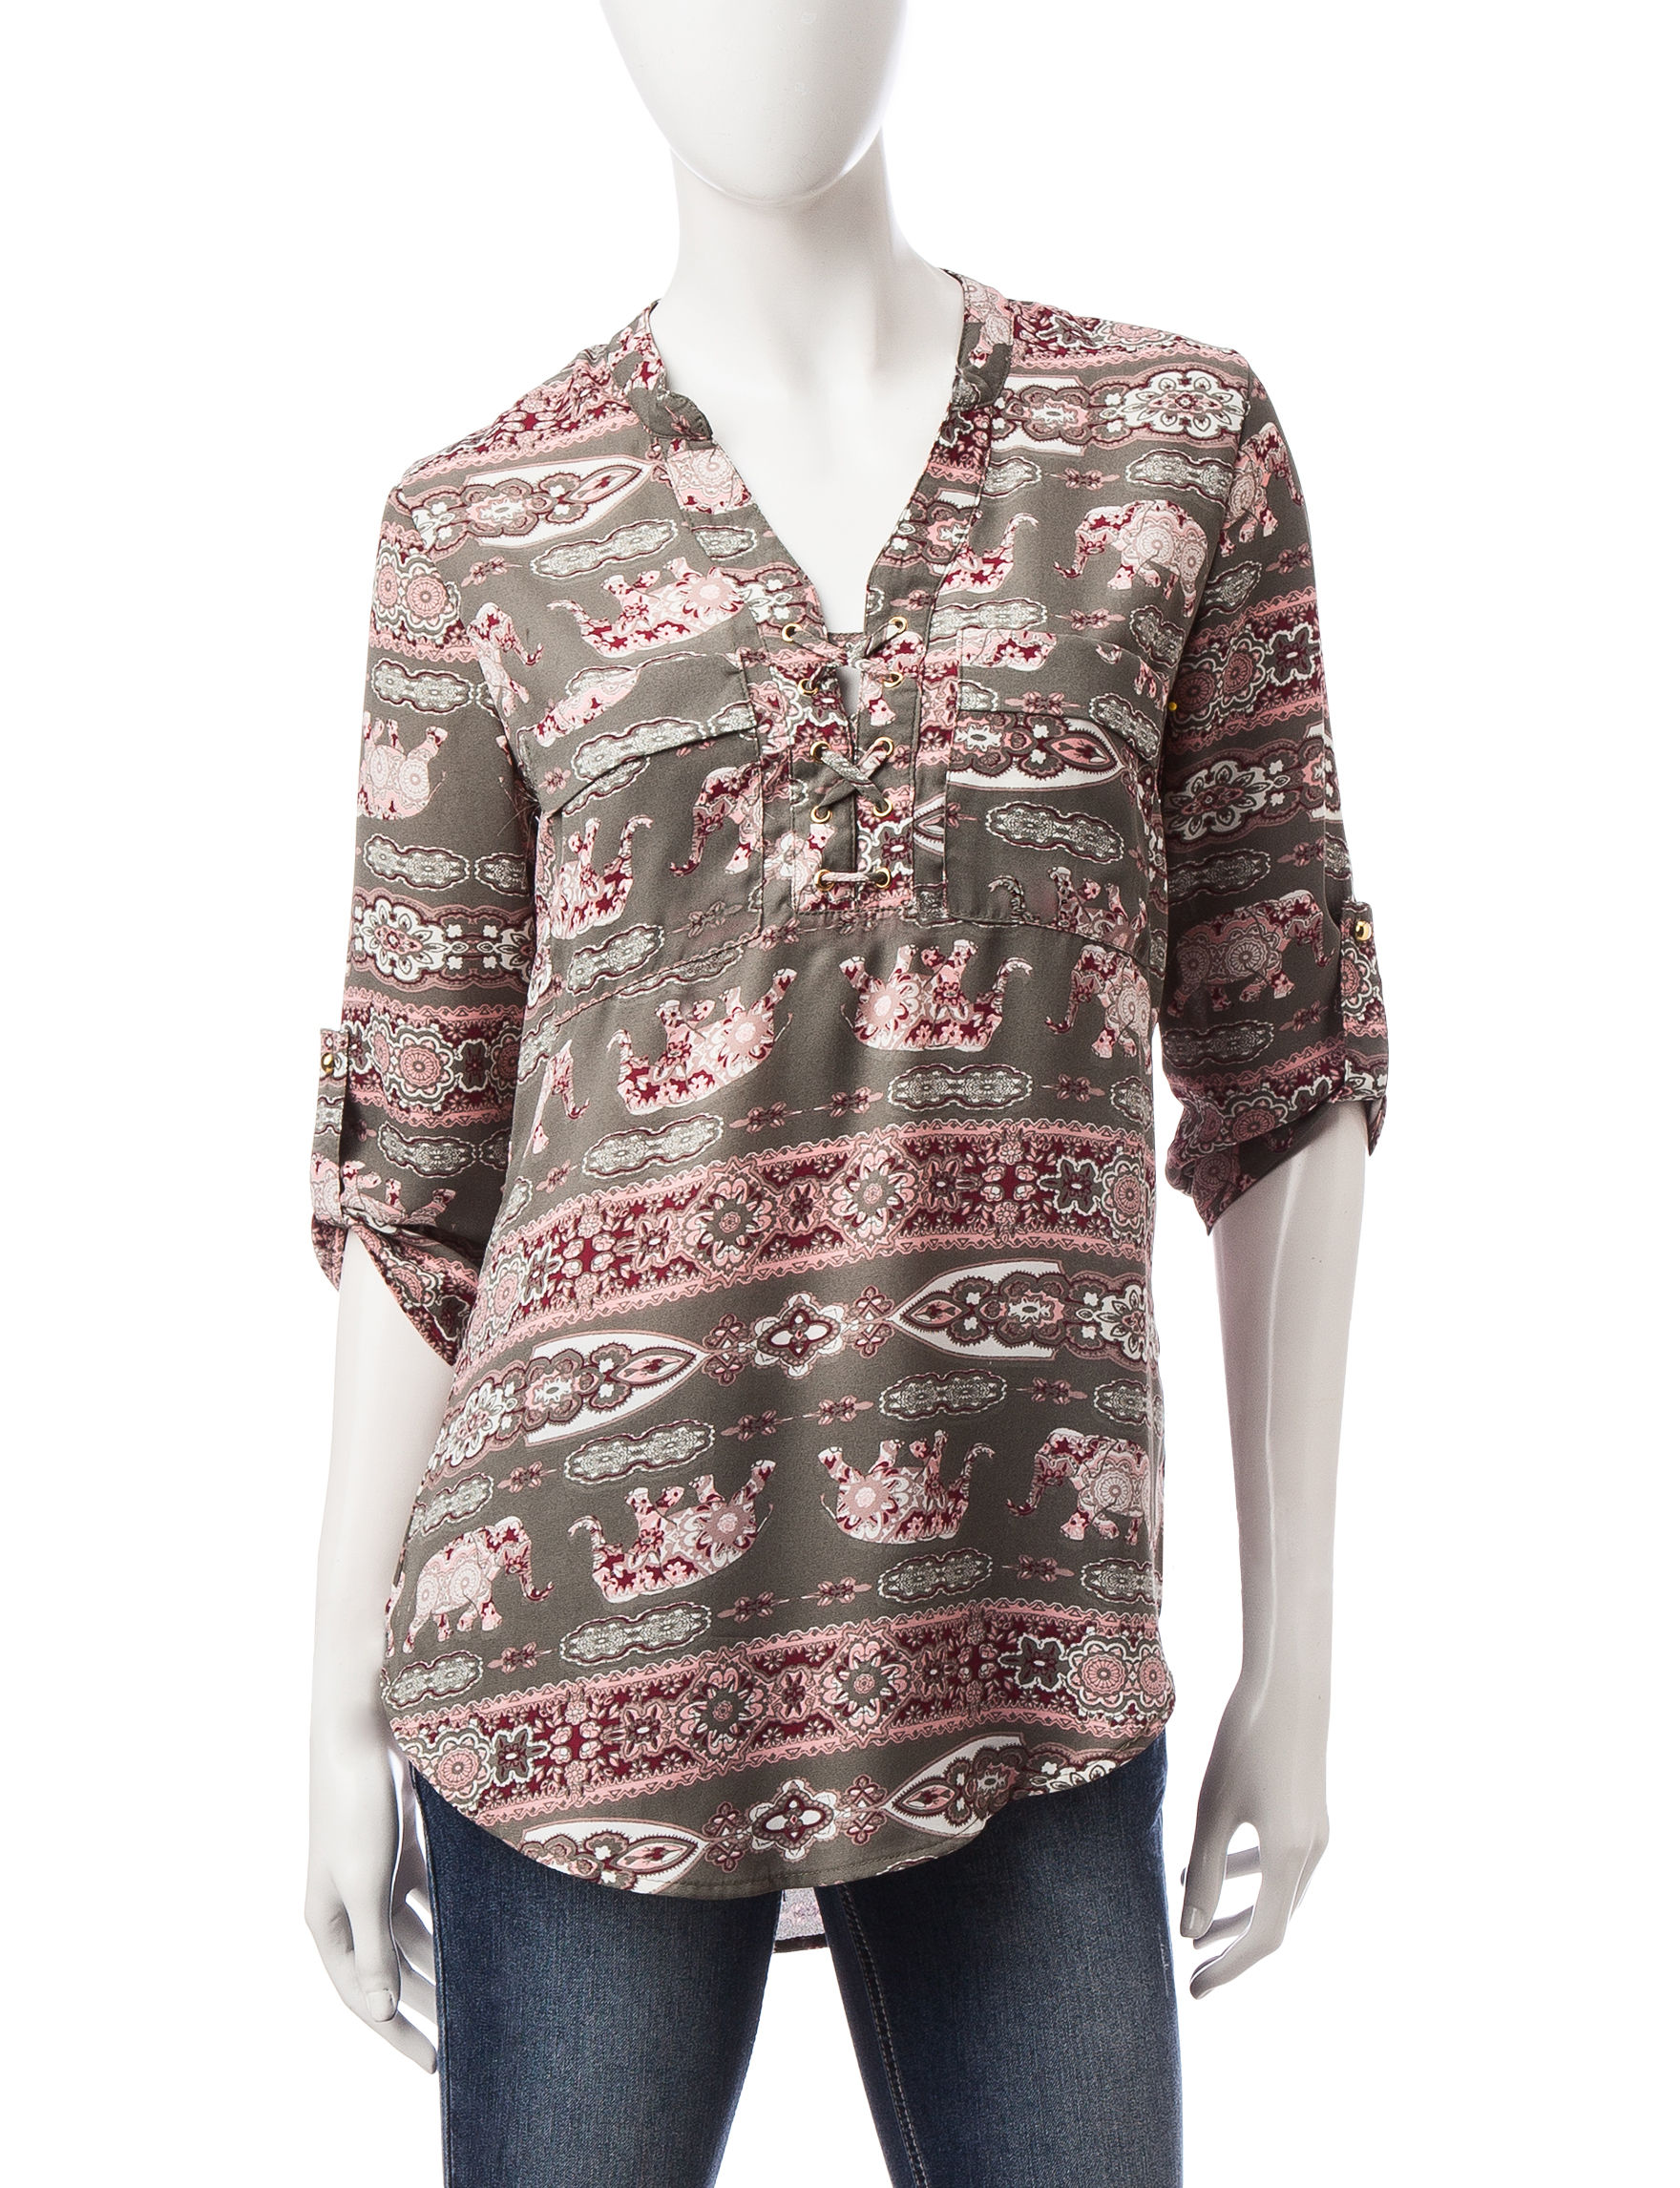 Wishful Park Olive Pull-overs Shirts & Blouses